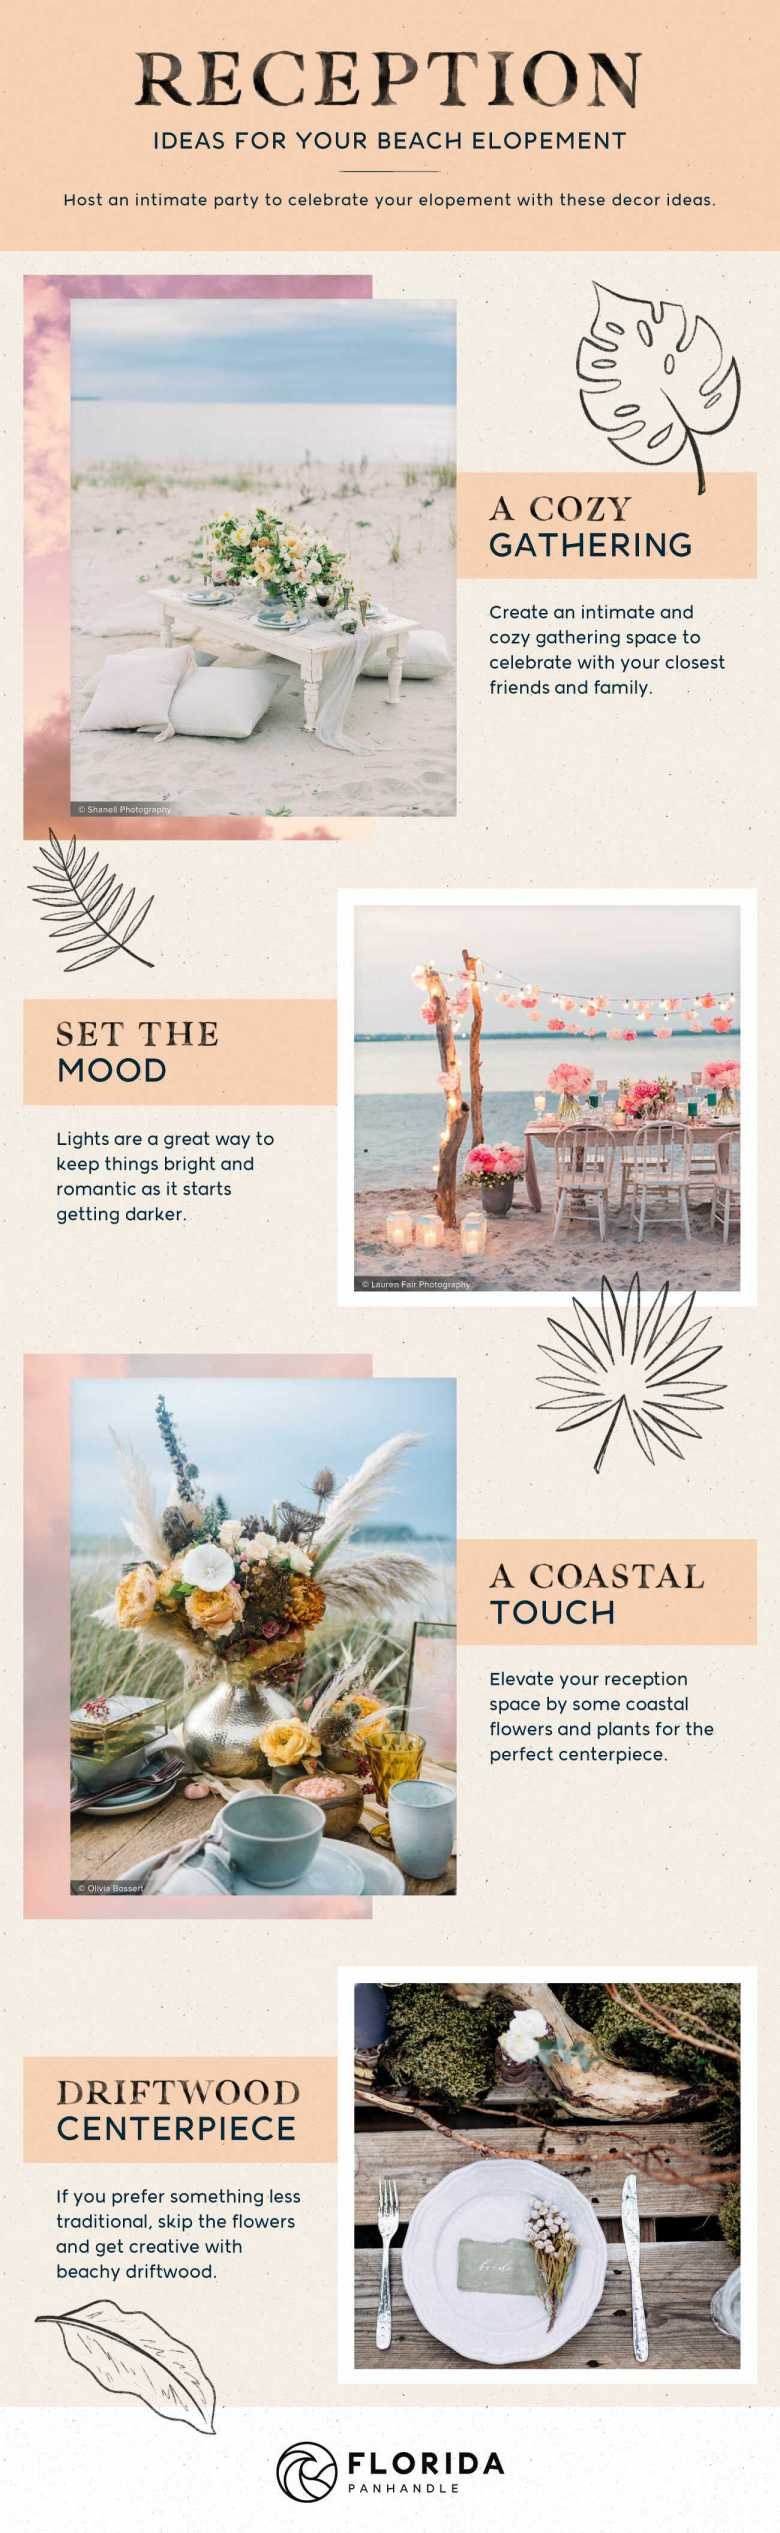 reception ideas for a beach elopement